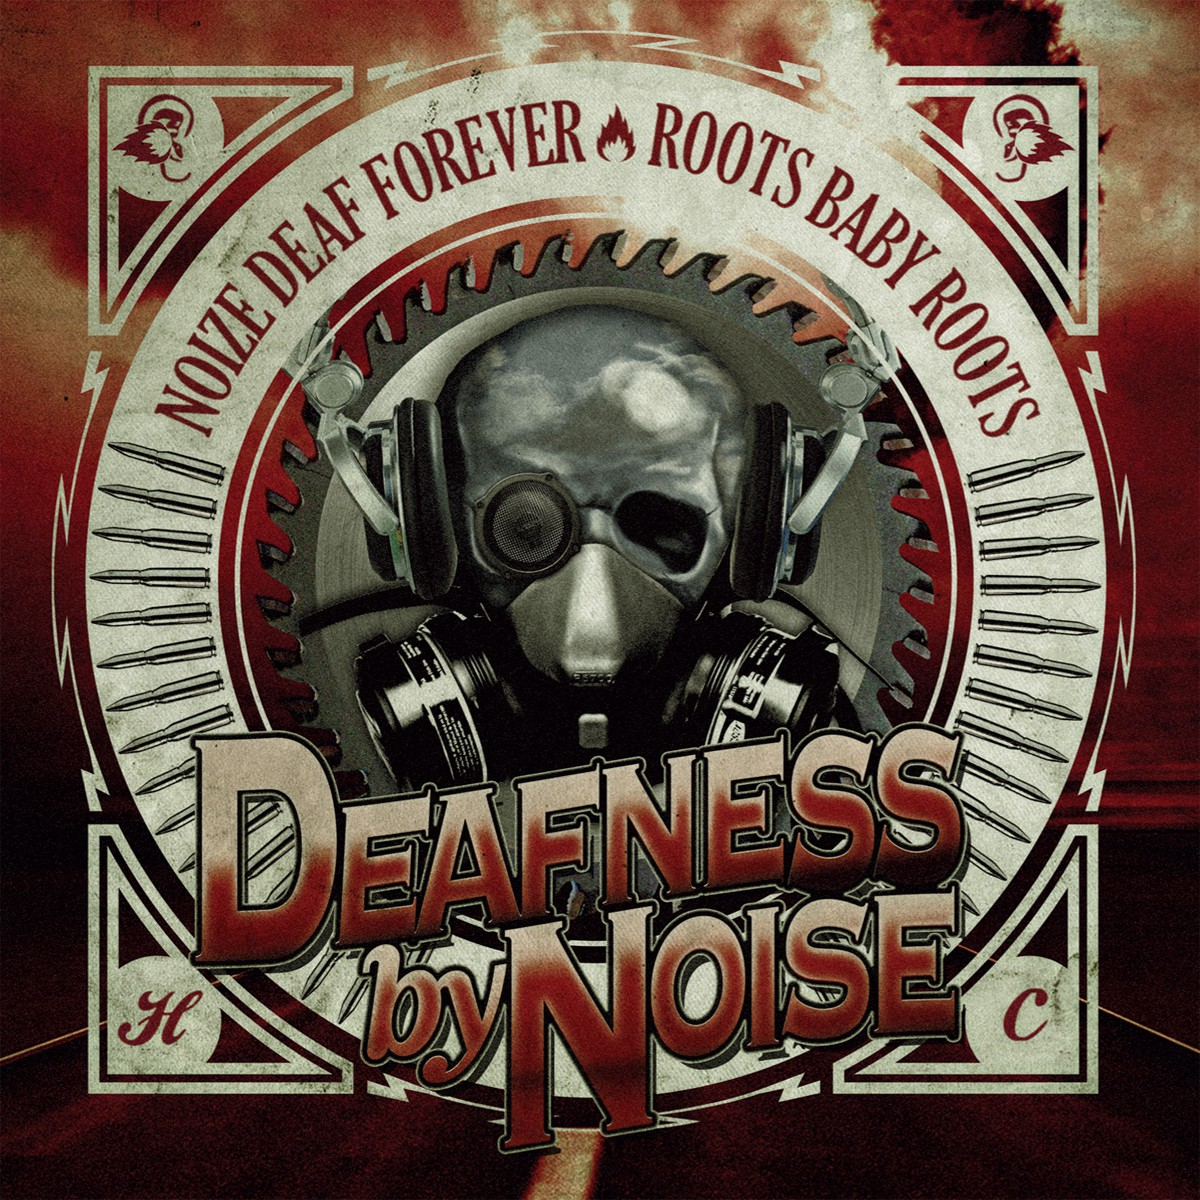 Deafness By Noise - Noize Deaf Forever/Roots Baby Roots DPCD